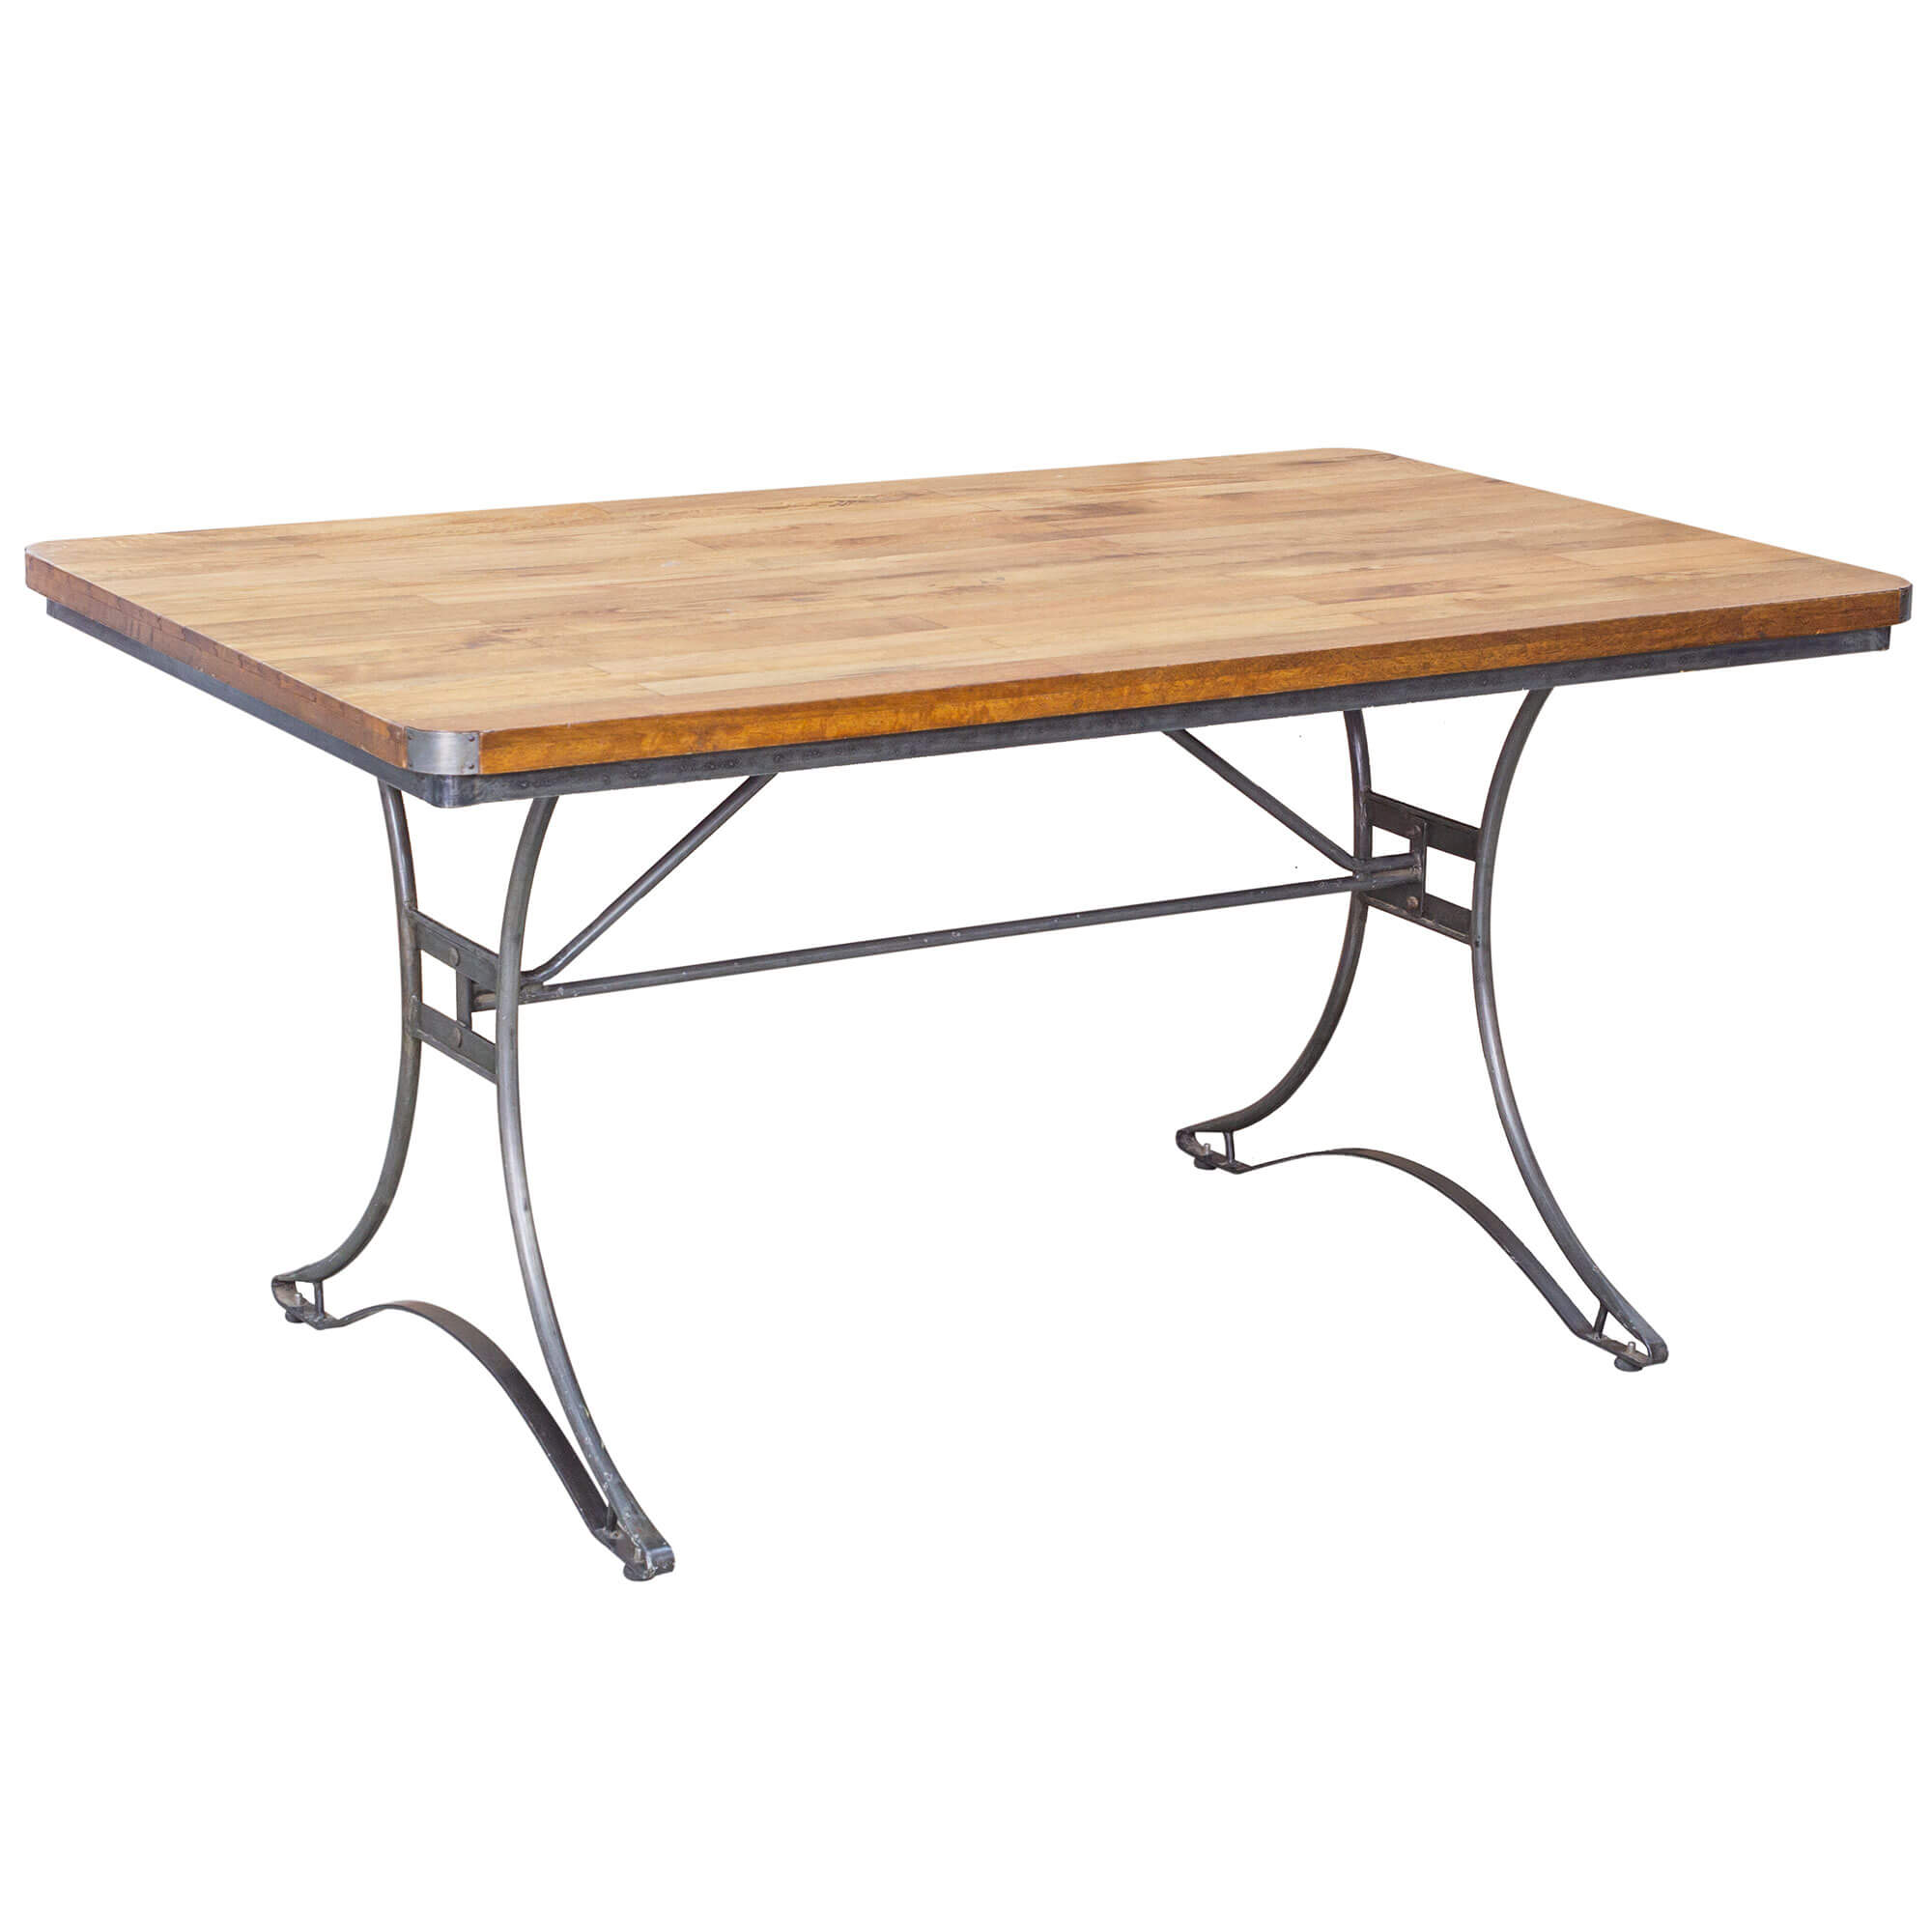 Urban Rectangular Dining Table x4 Chairs | Solid Wood |